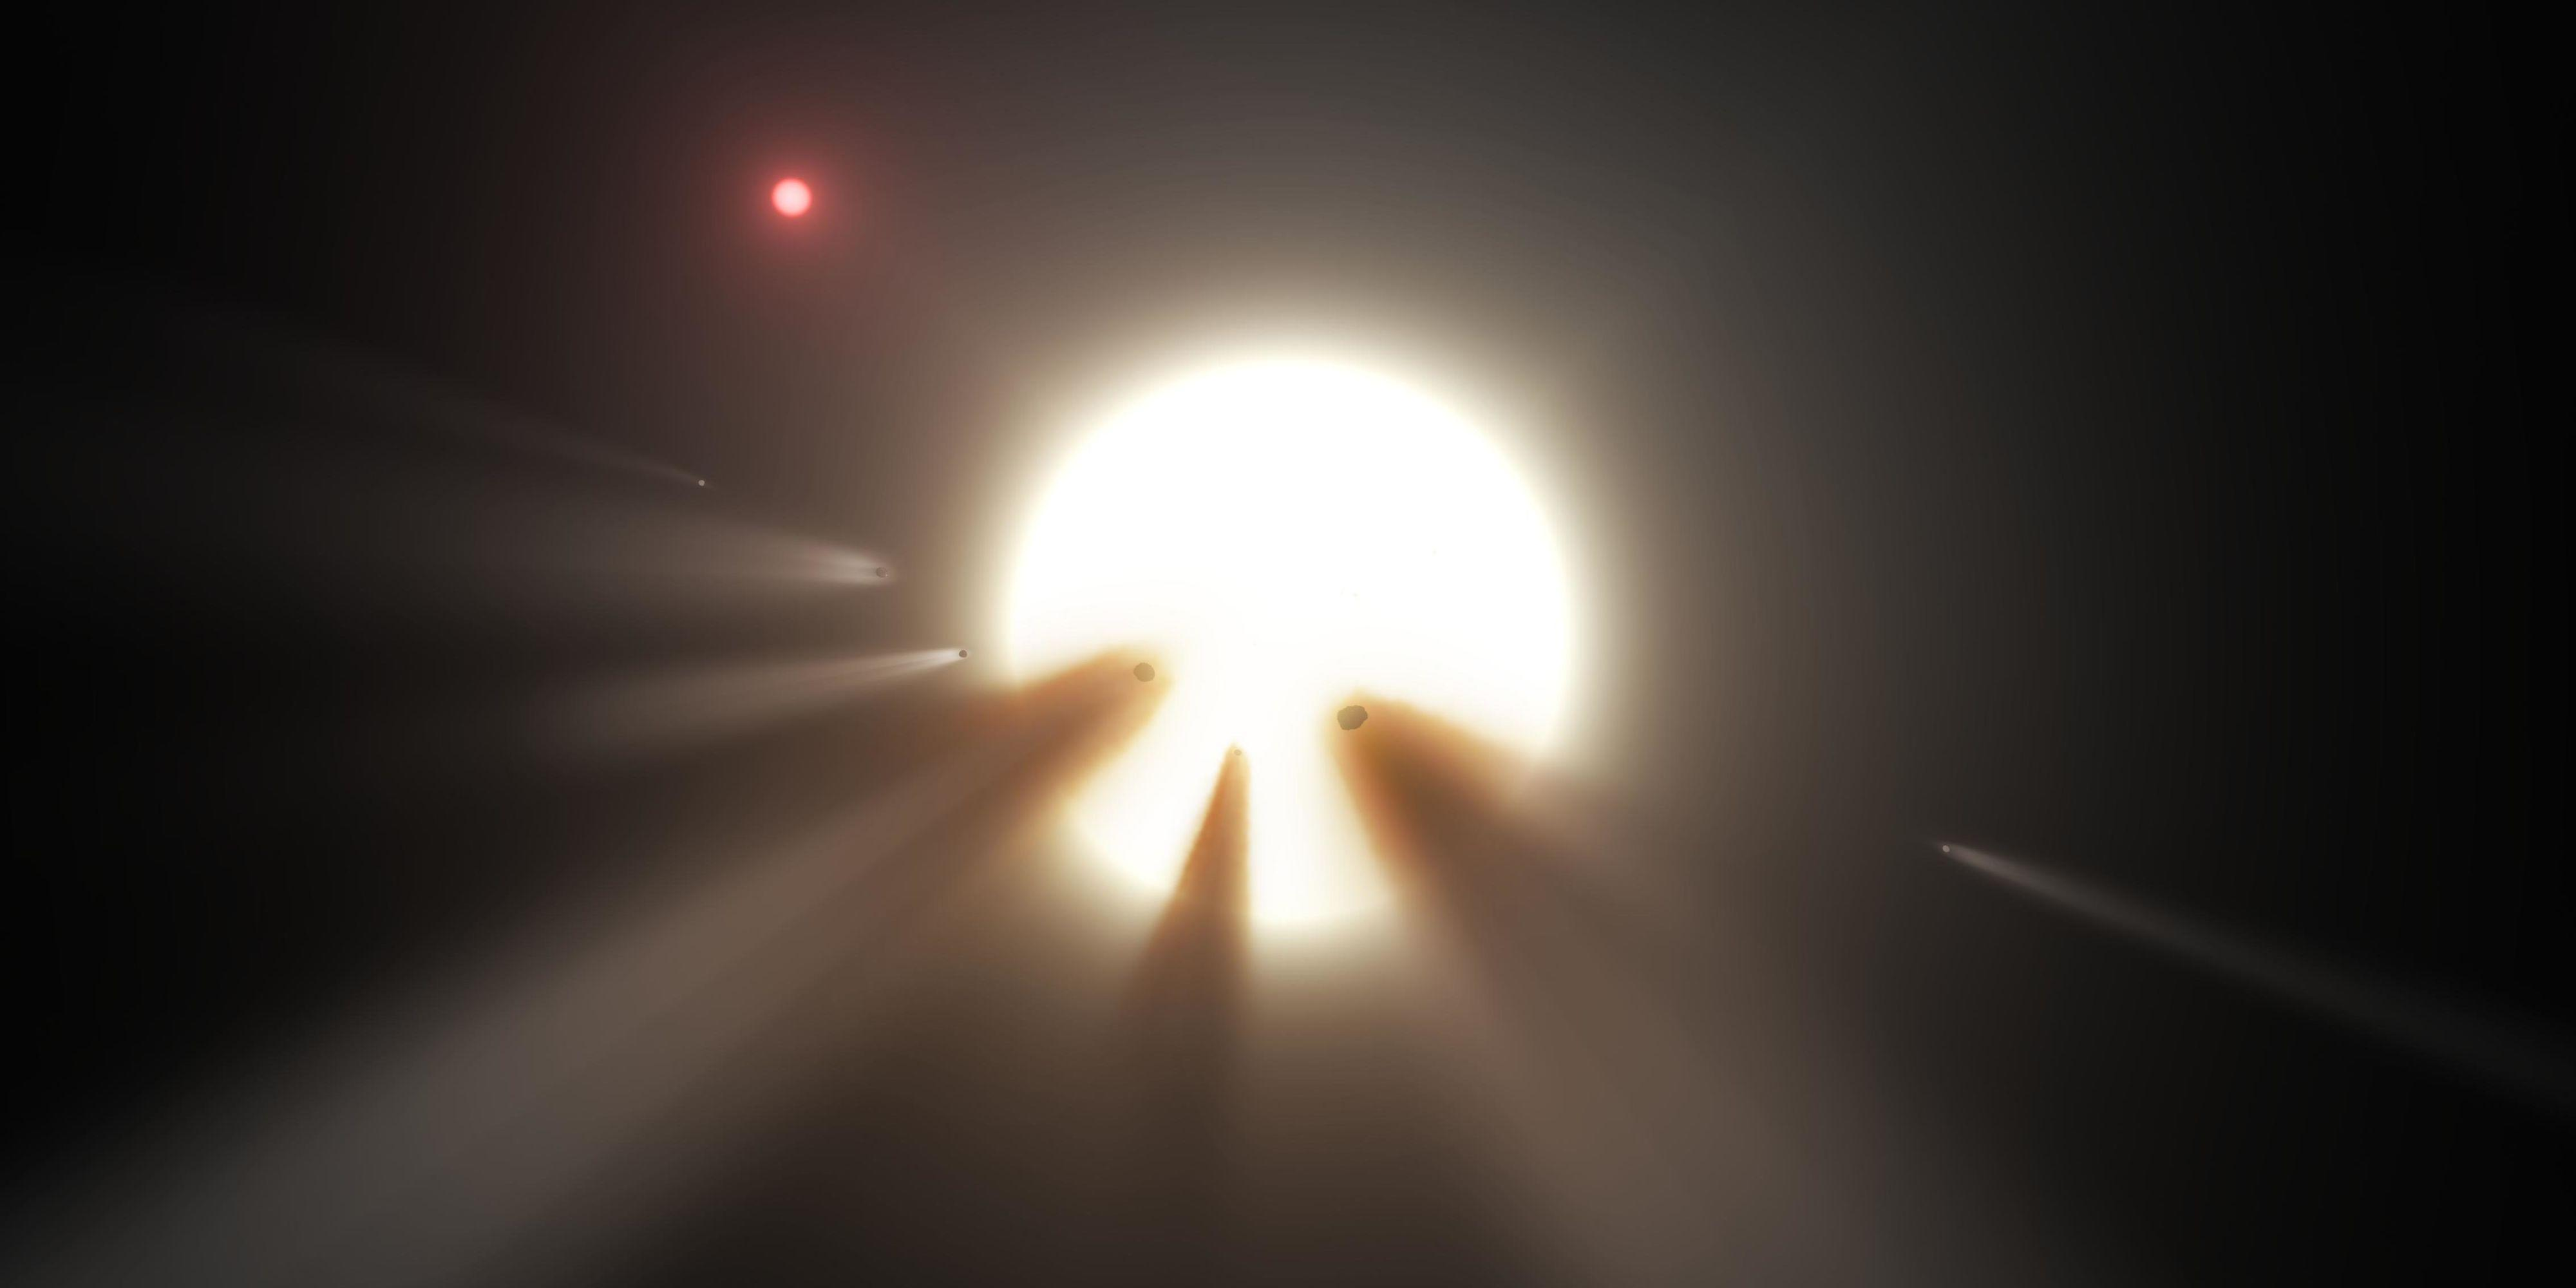 NASA's Next Telescope Could ID Alien Megastructures